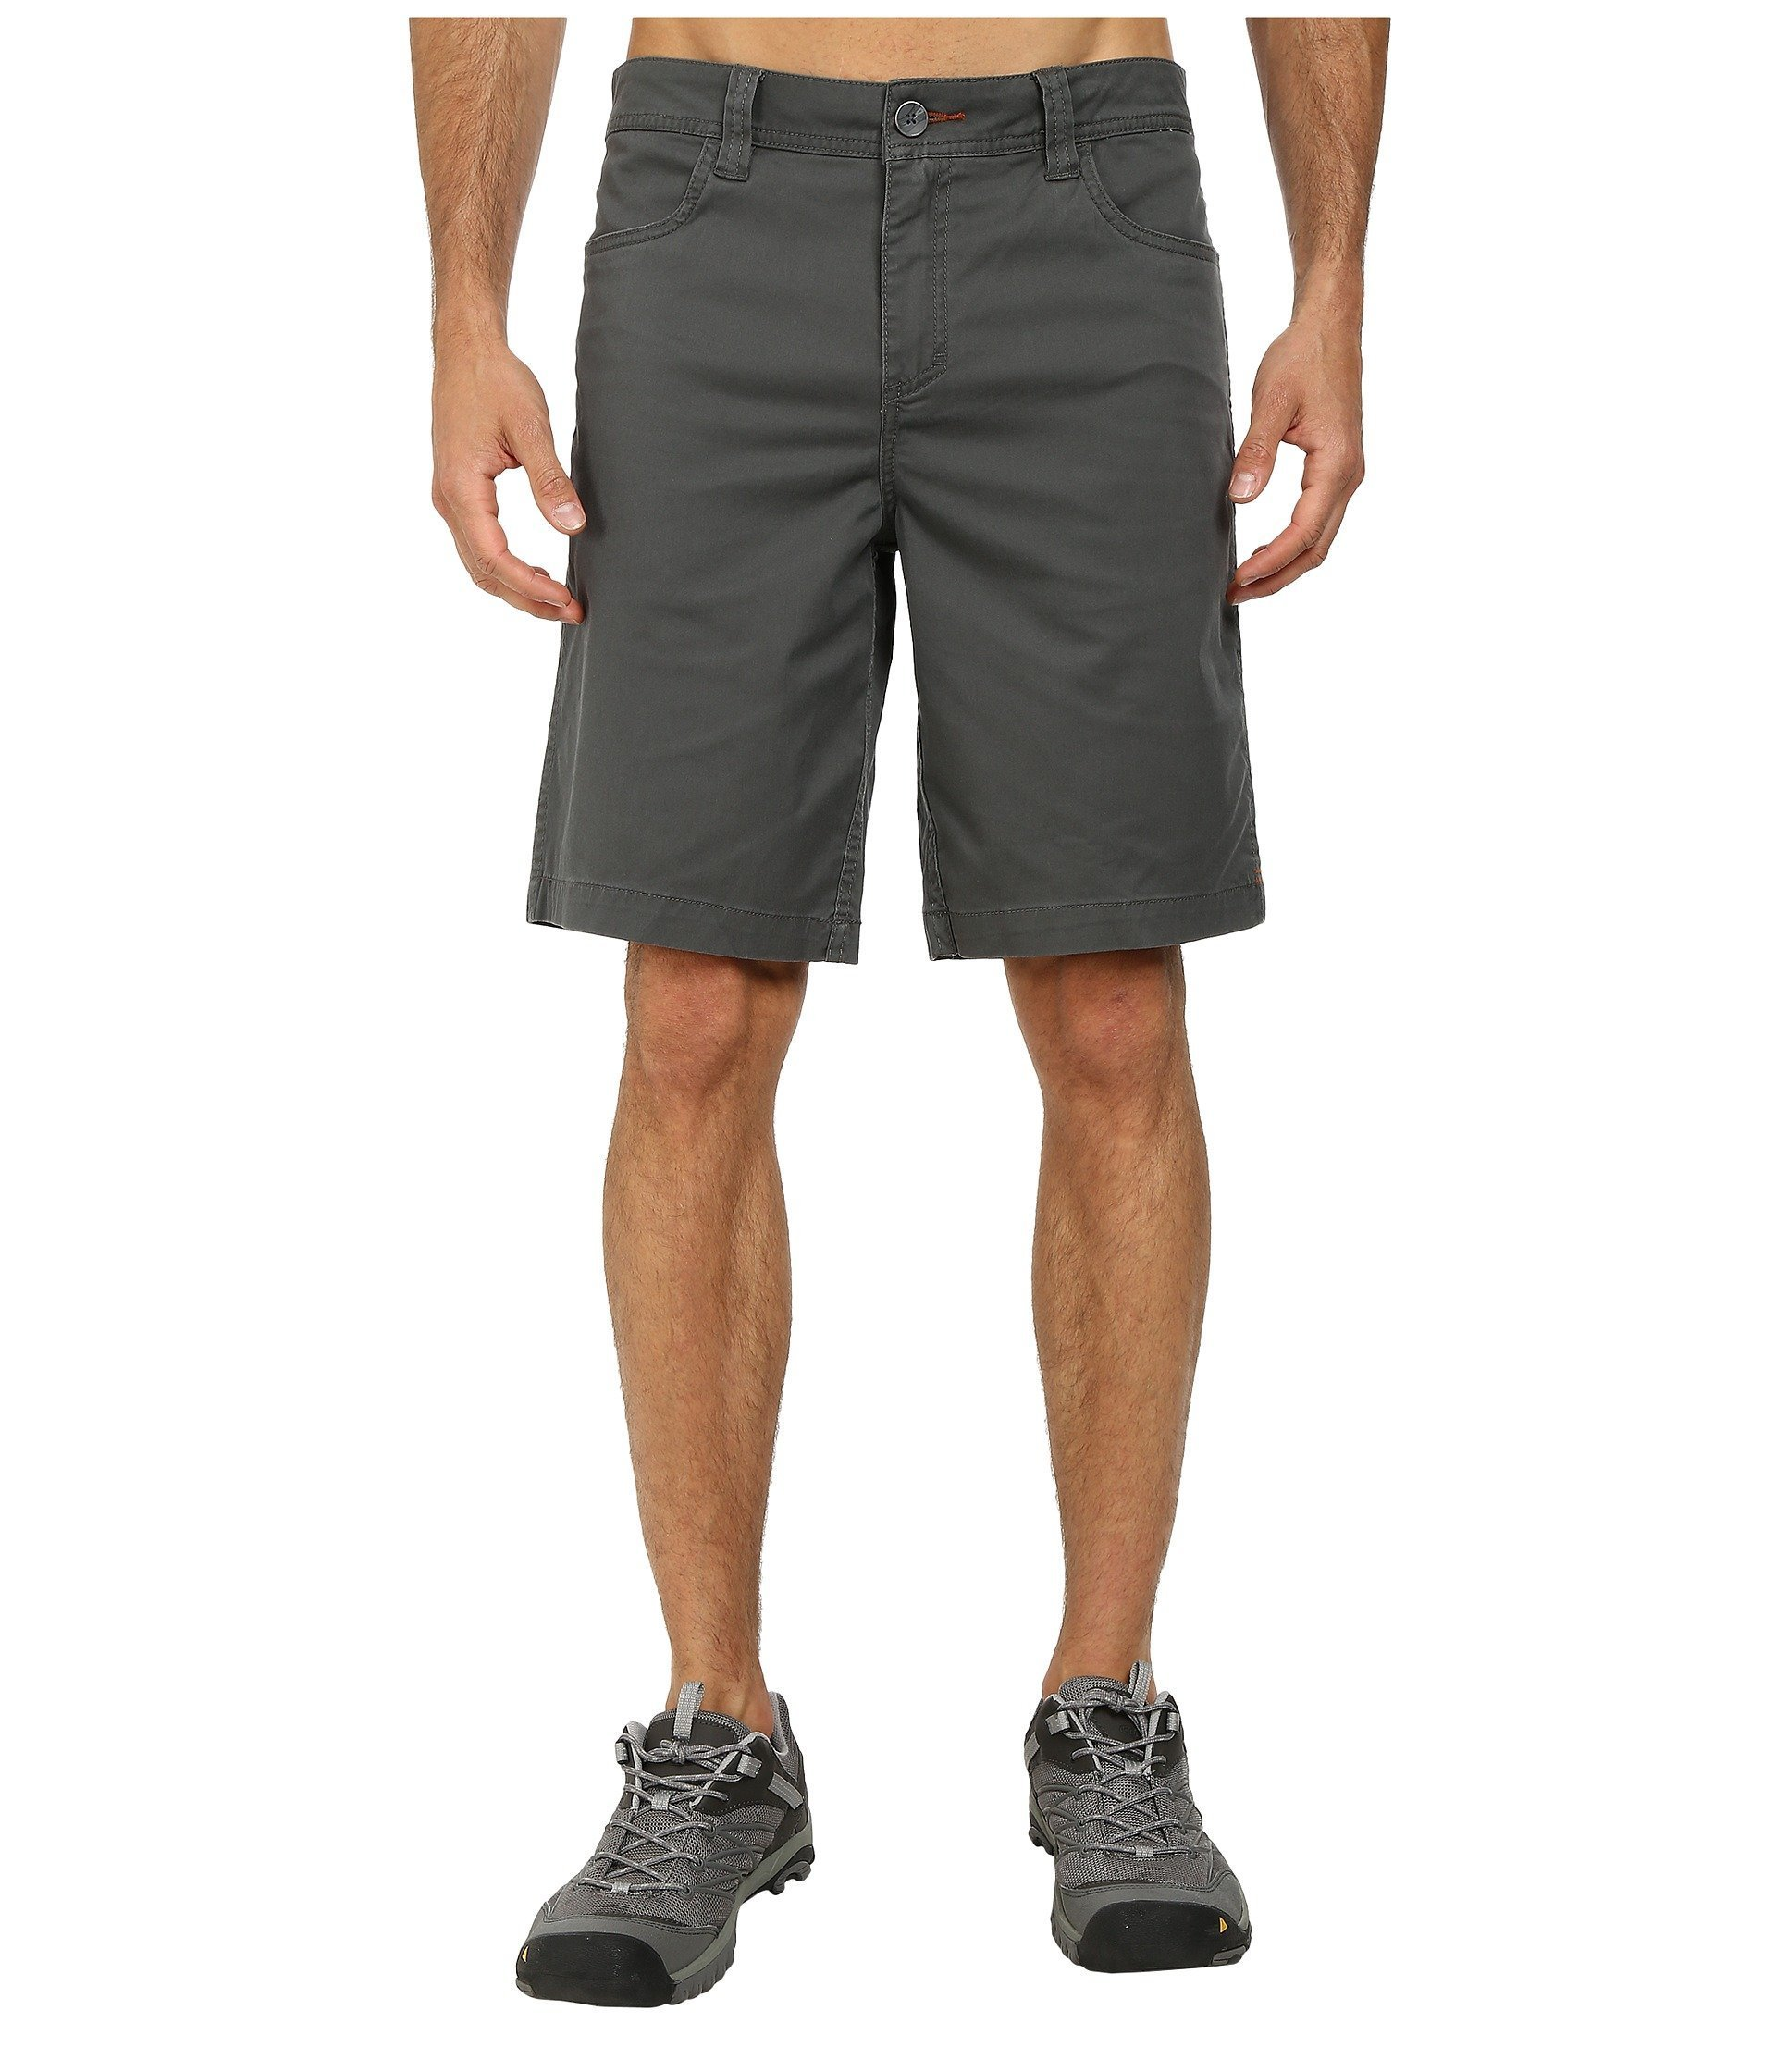 Toad&Co Mission Ridge Short 10.5